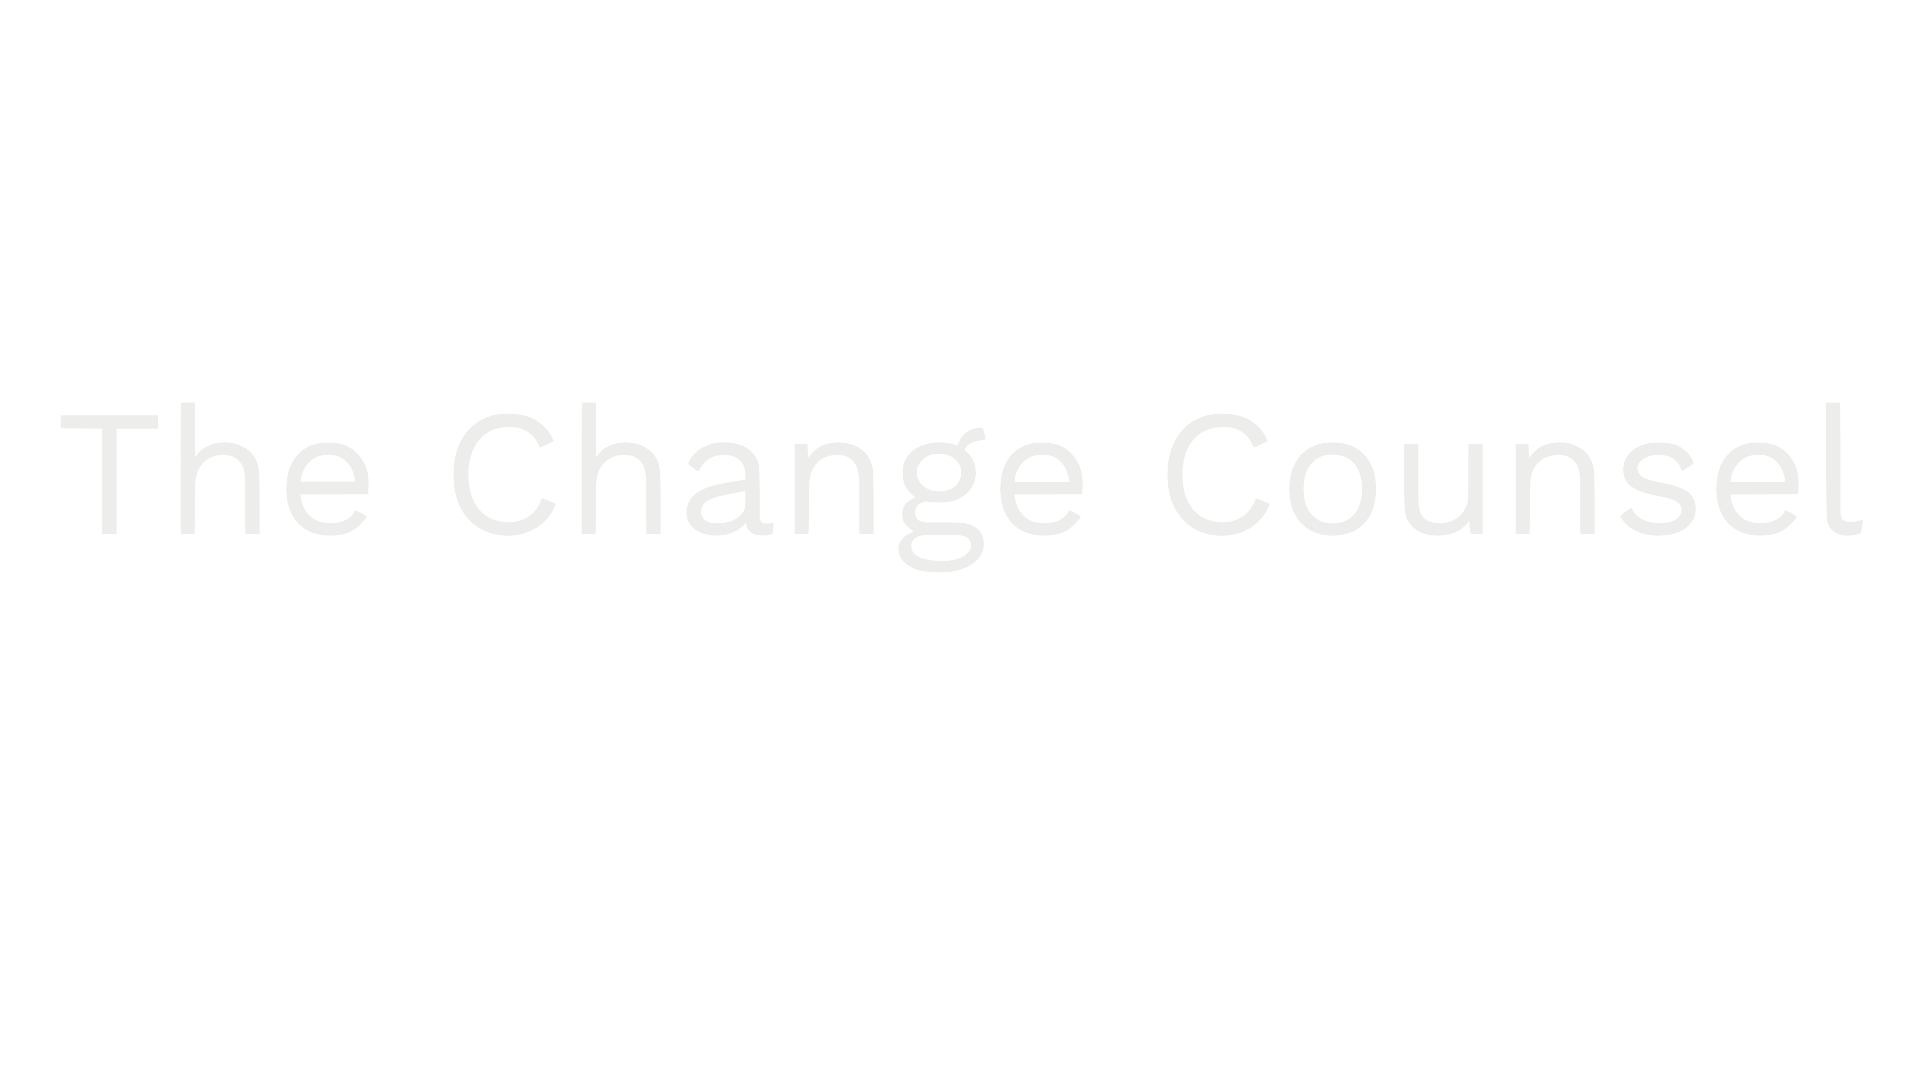 Change Counsel